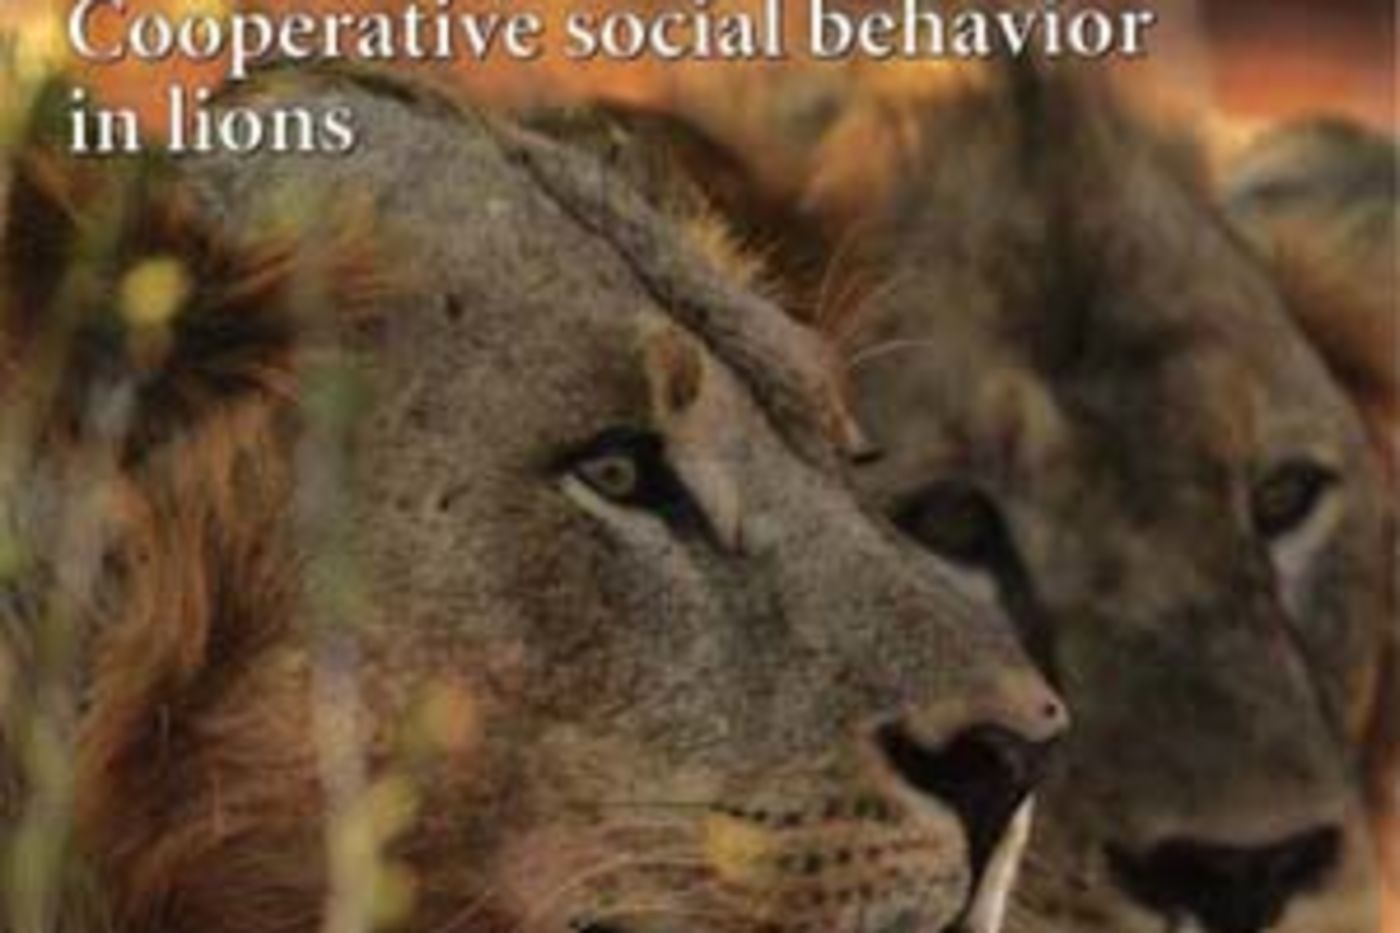 Man-eating Lions Ate Fewer People Than Believed | Field Museum